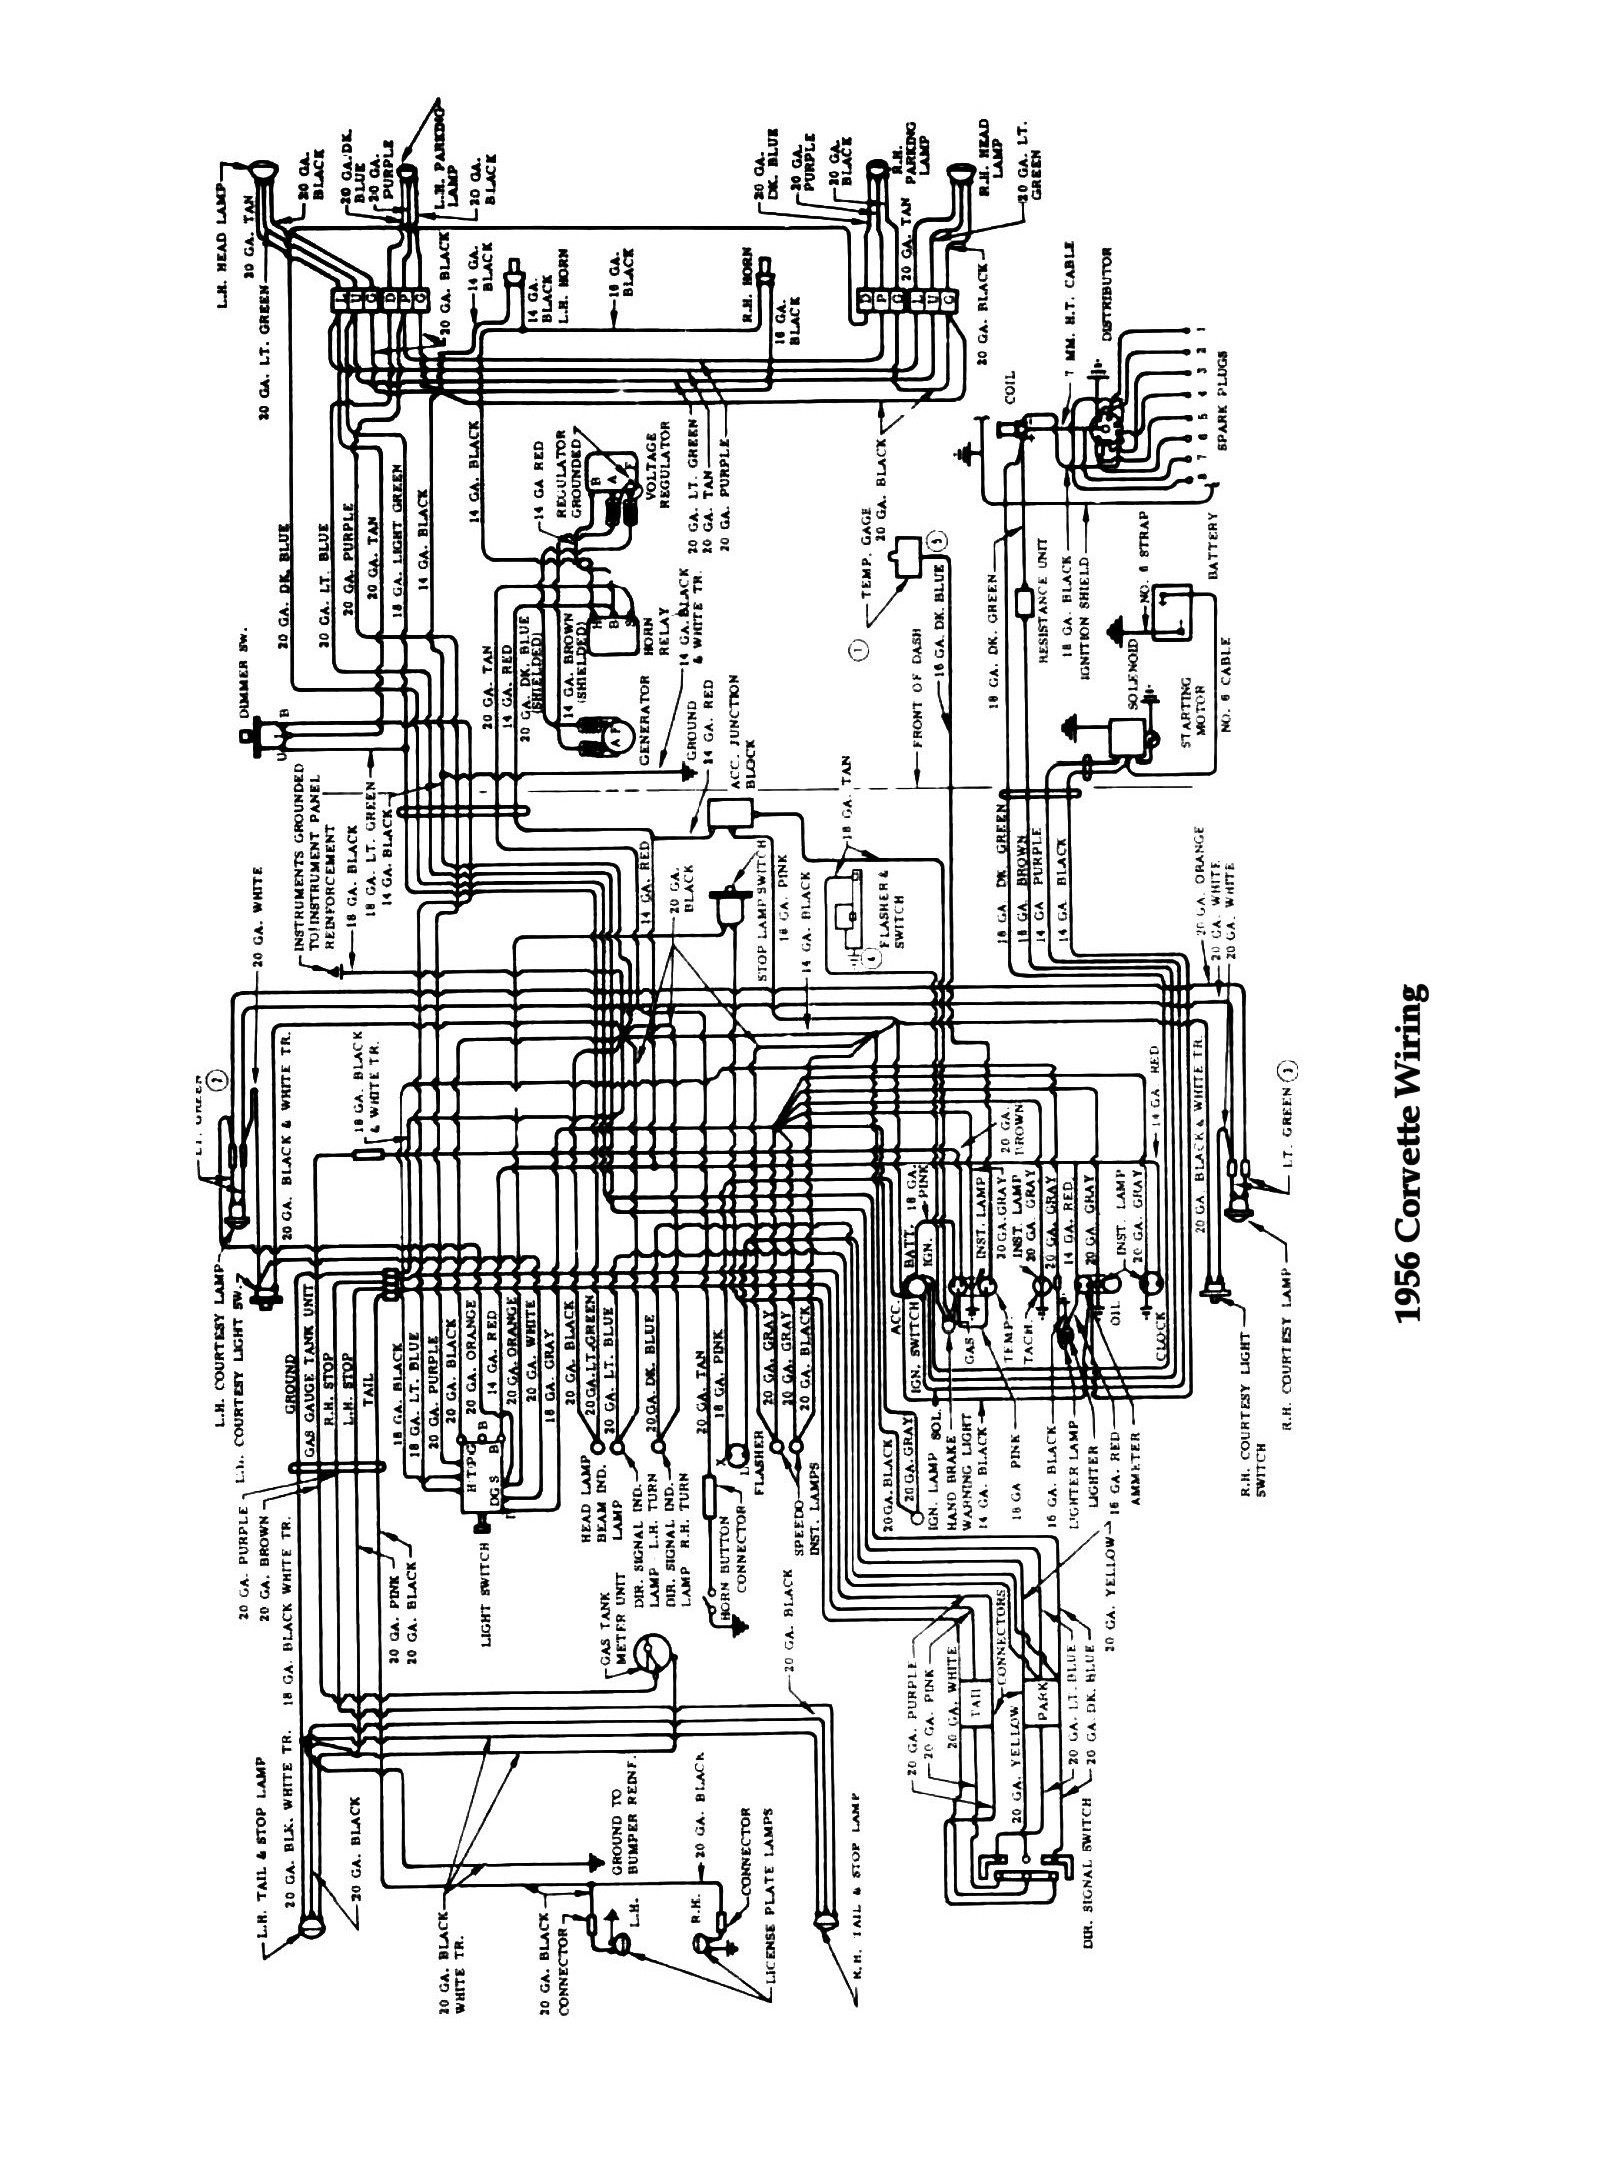 56corvette chevy wiring diagrams c3 corvette wiring diagram at crackthecode.co